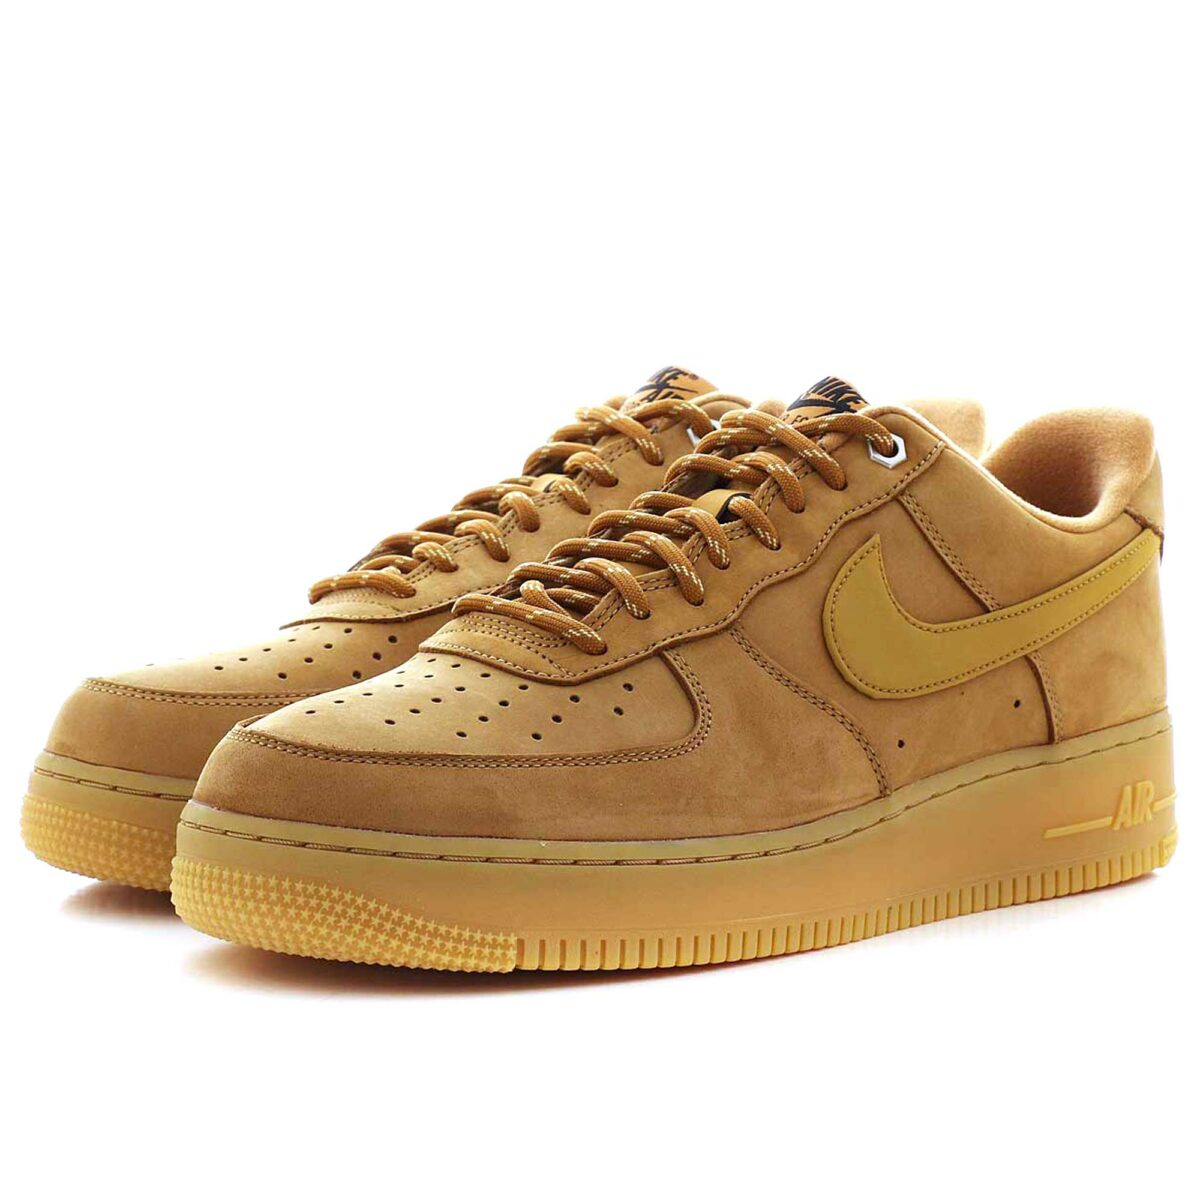 nike air force 1 07 WB flax brown купить